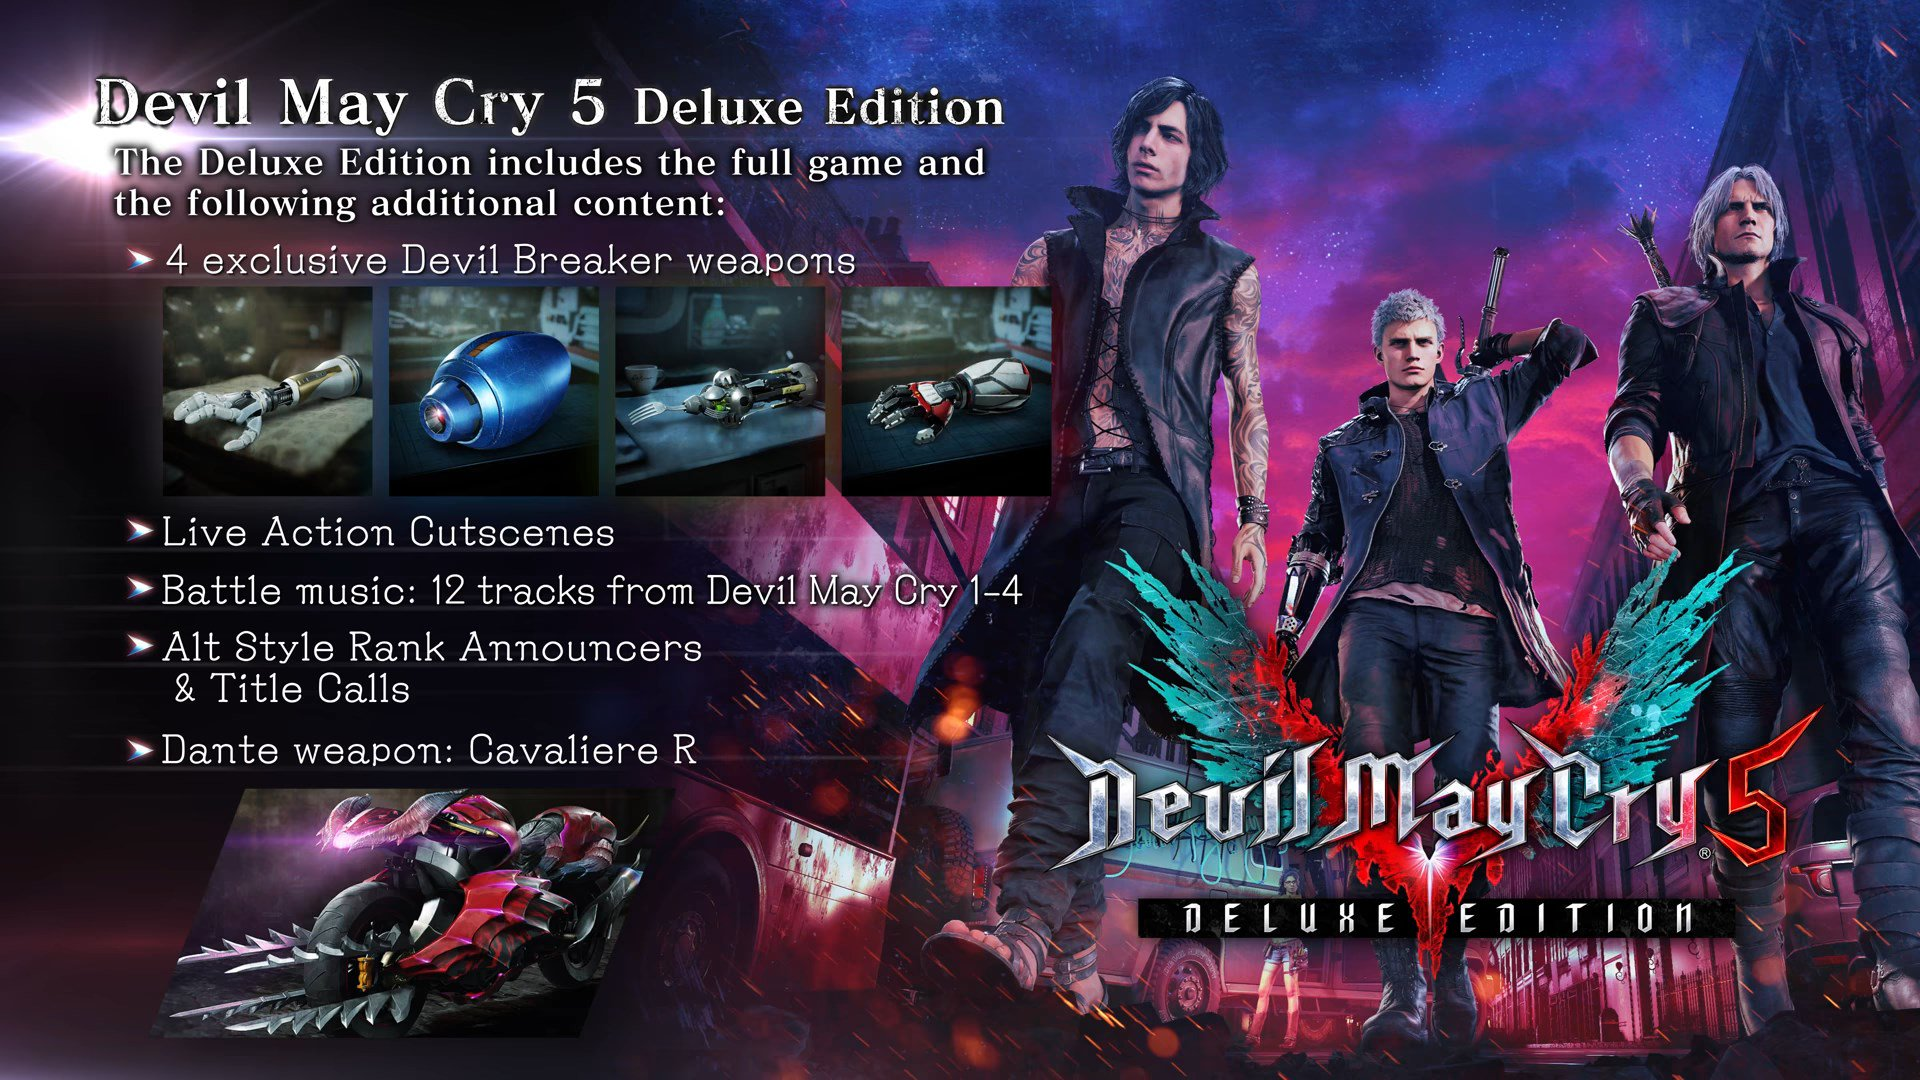 Devil May Cry 5 Game Preorders